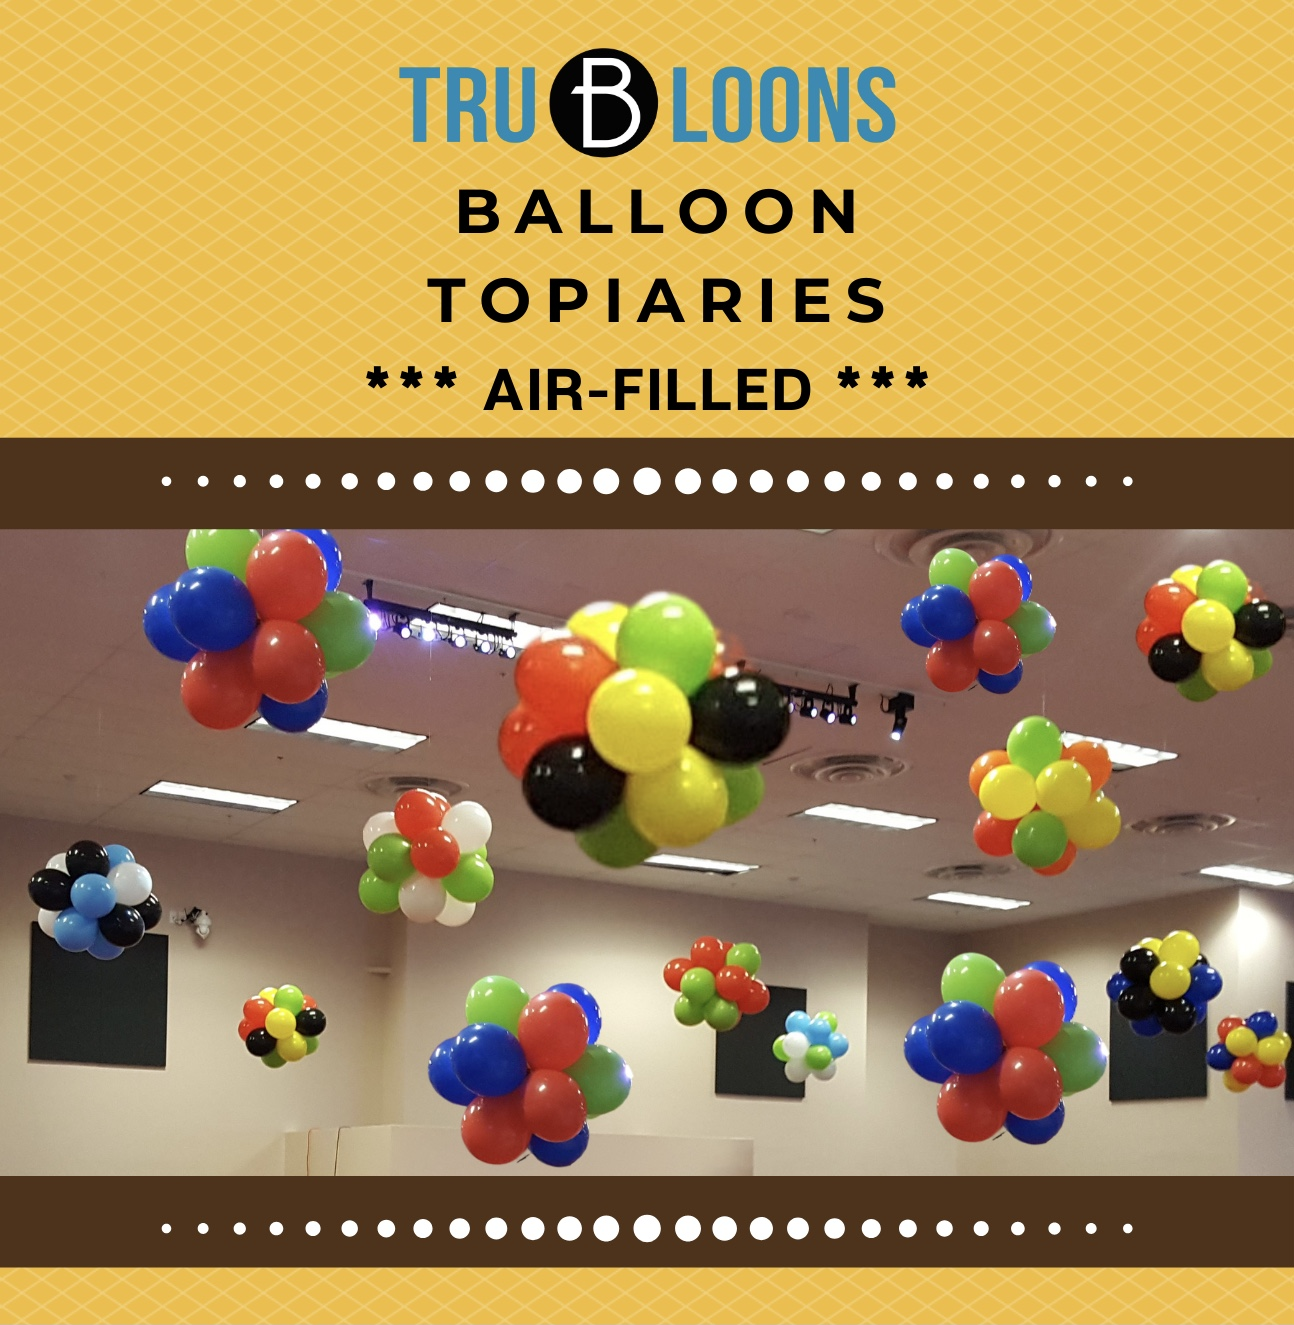 Diy Topiary Balloon Kit Tru B Loons